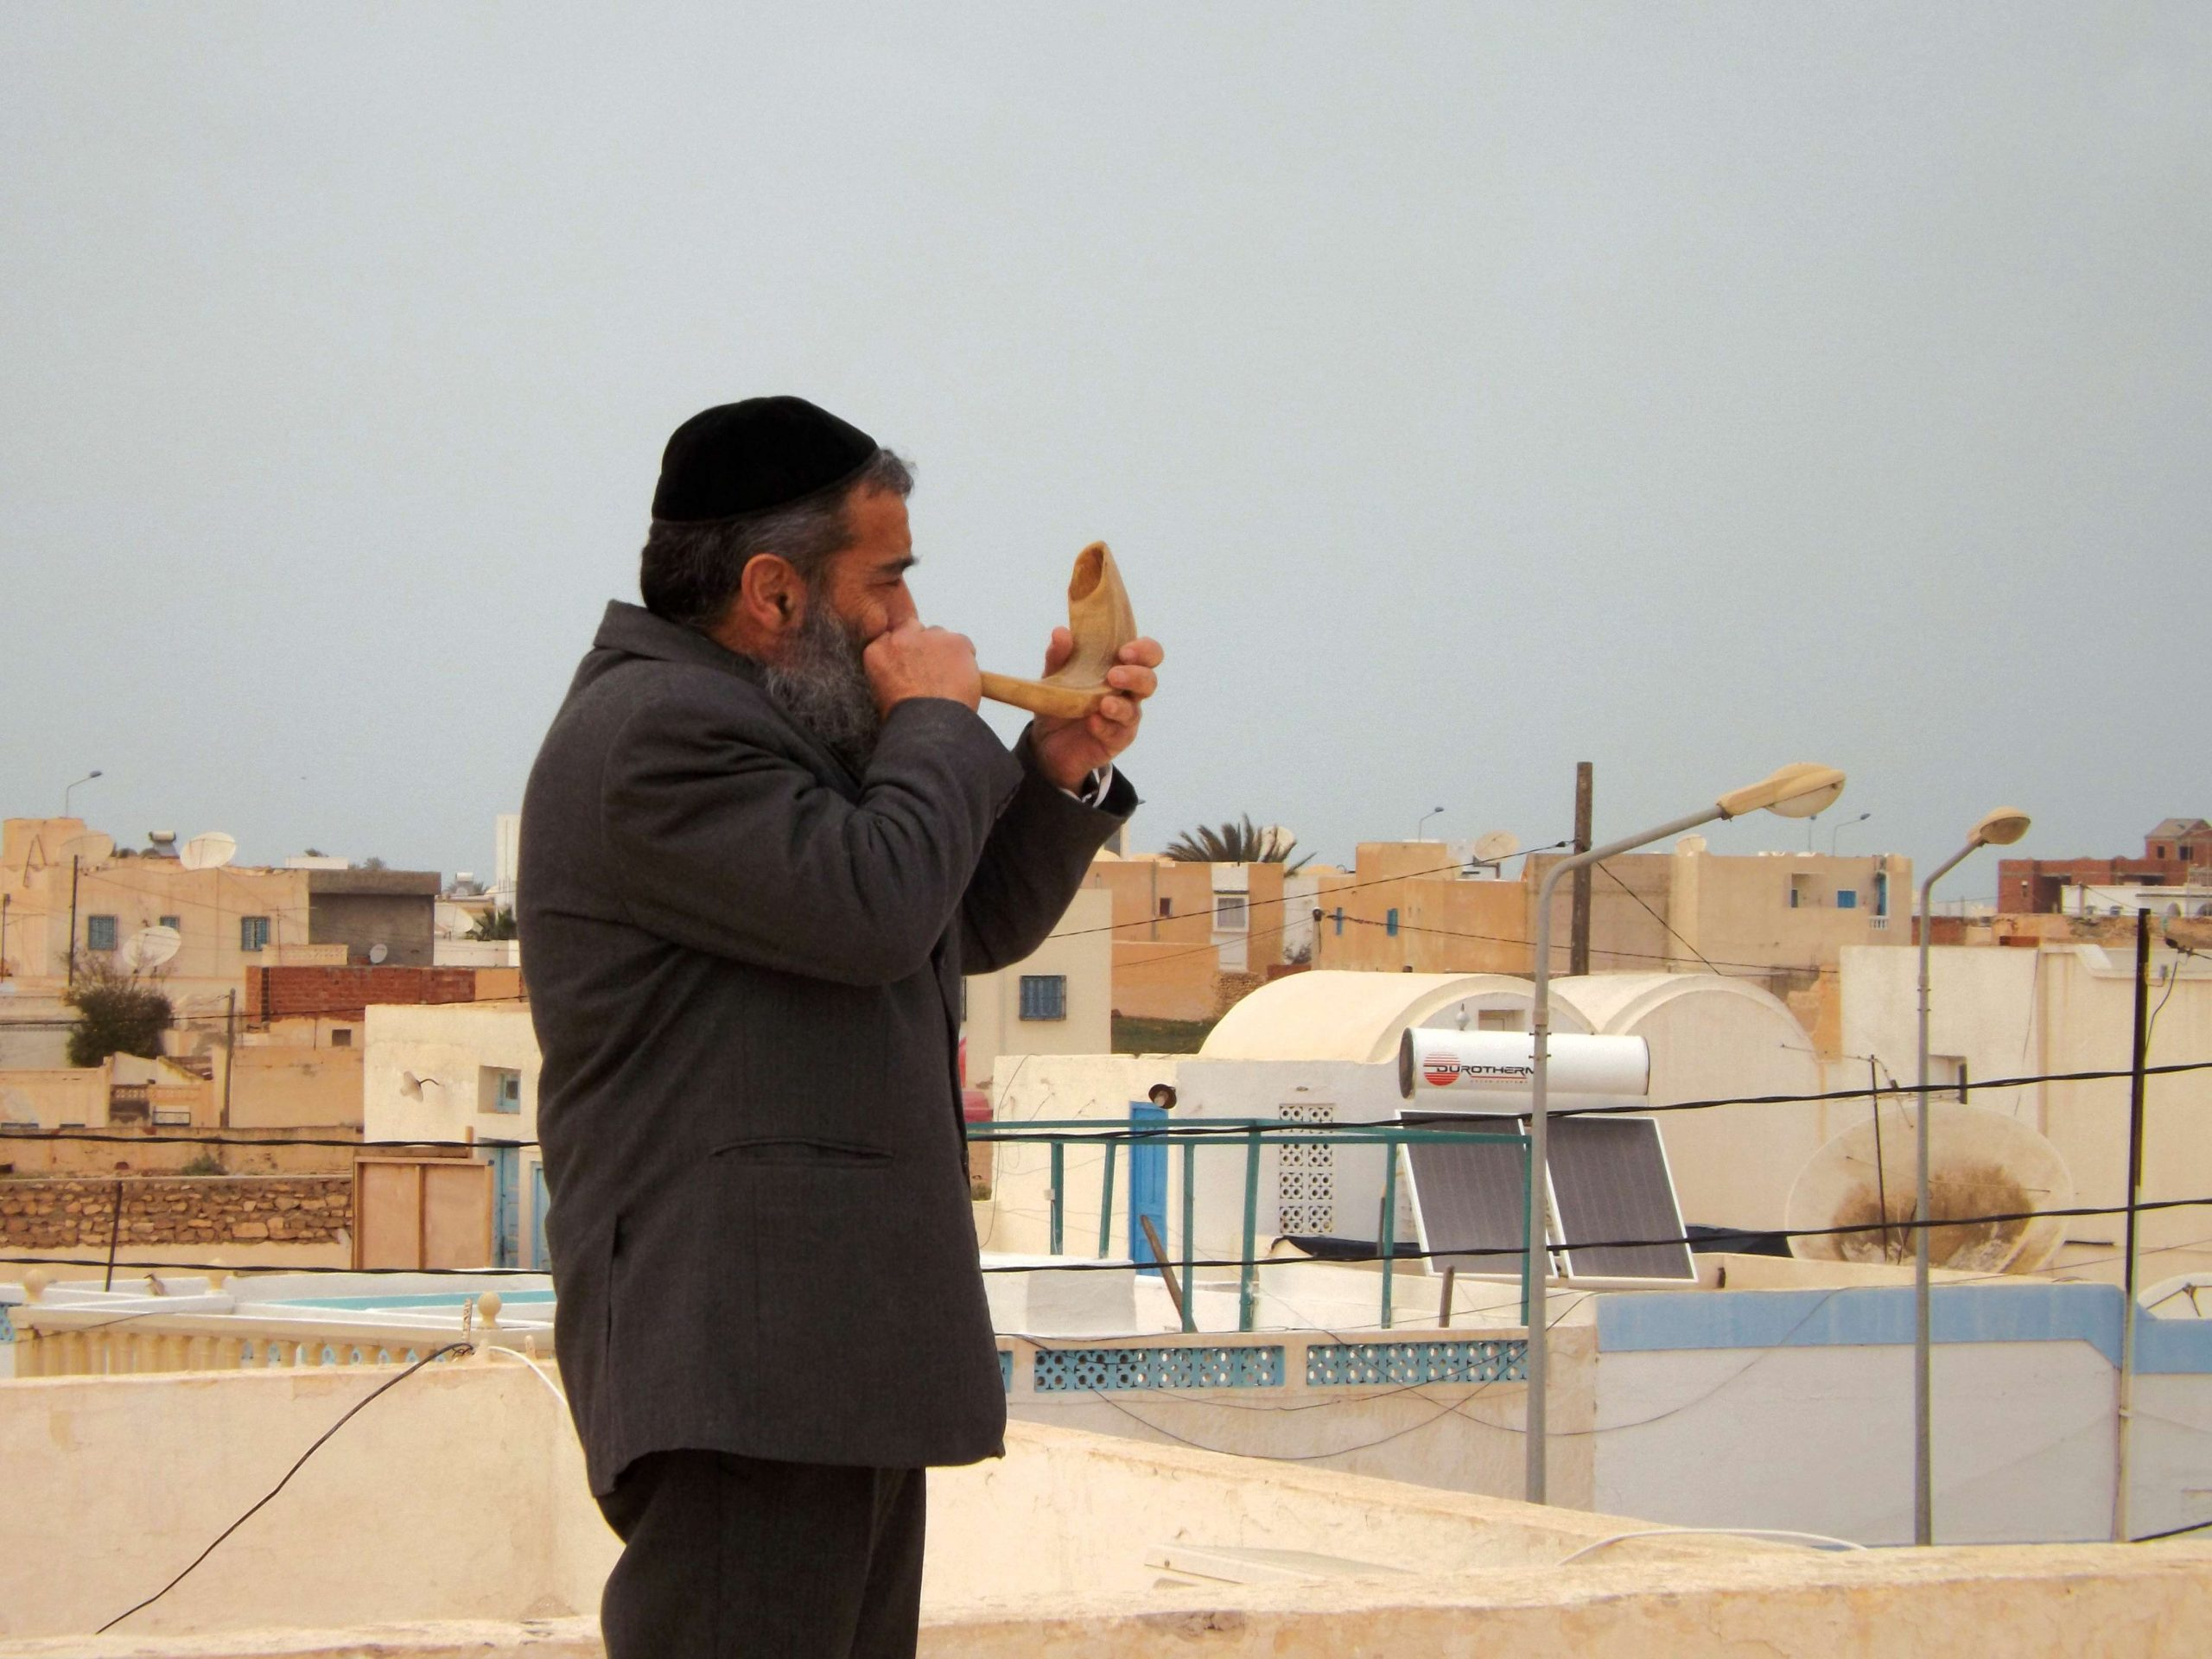 An ancient custom continues on the rooftops of Djerba. Rabbi Chaim Biton with his shofar